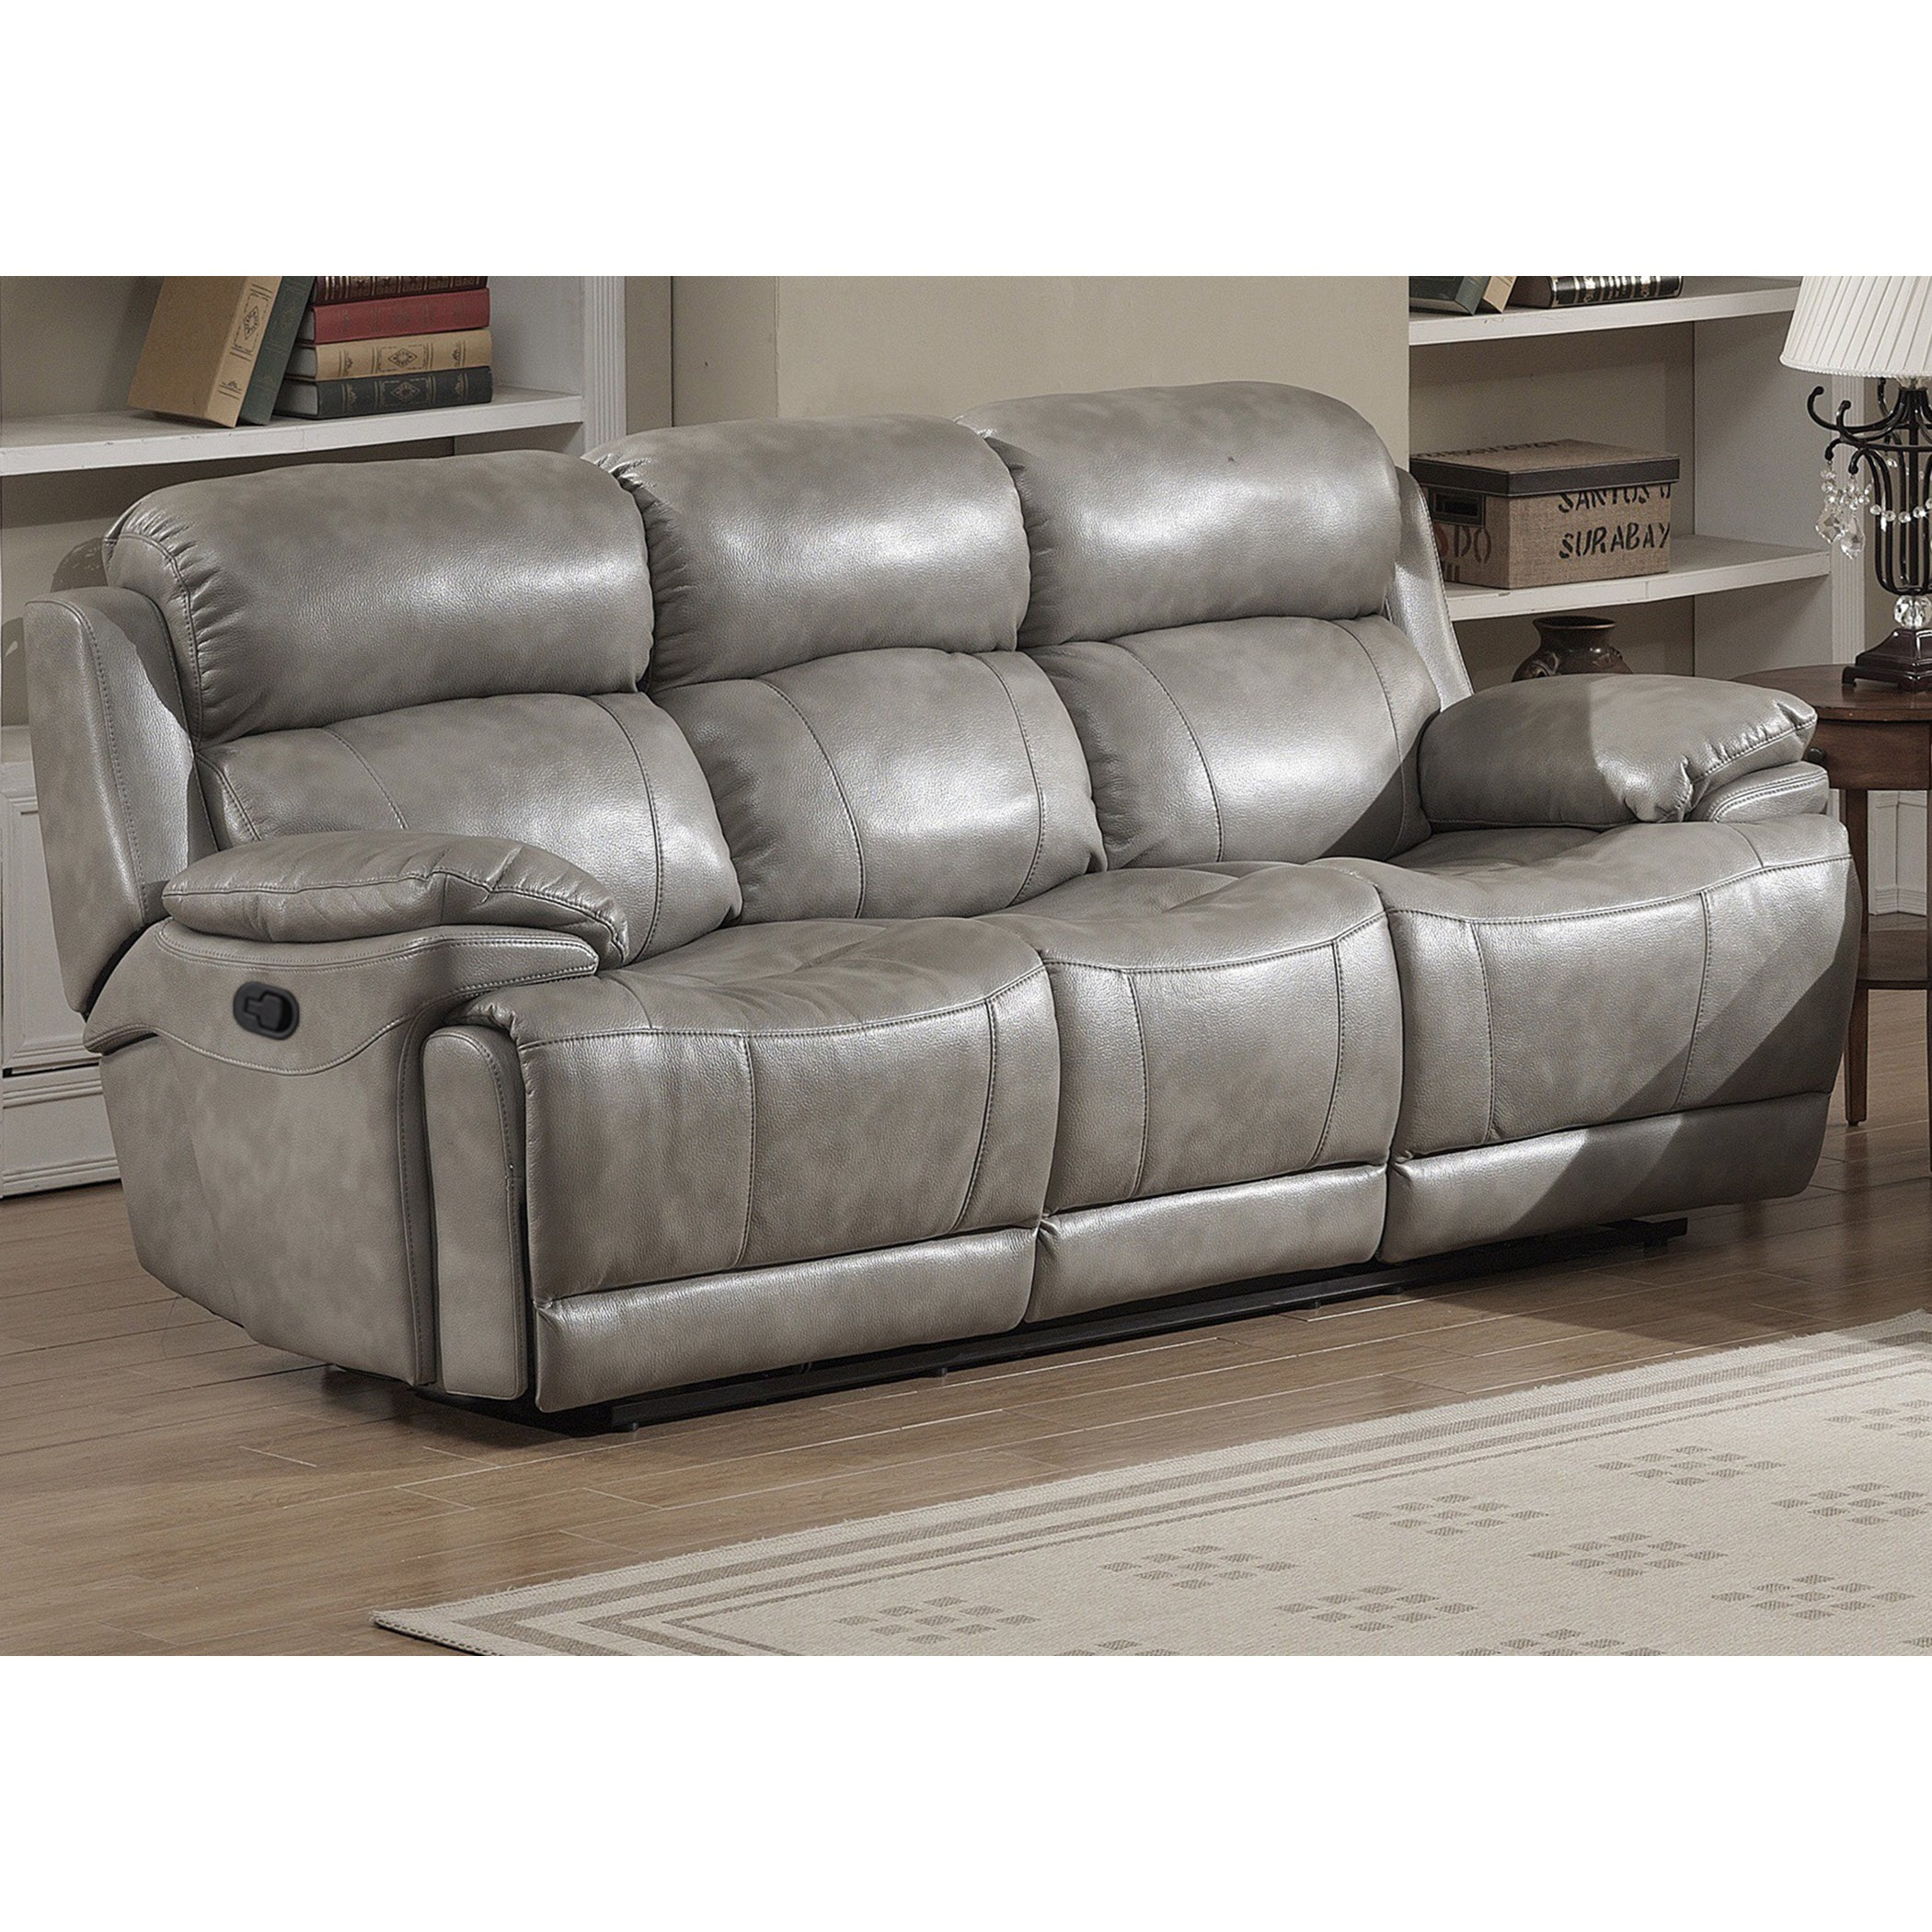 Phenomenal Estella Contemporary Sofa And Loveseat With Storage Console 2 Piece Set Ncnpc Chair Design For Home Ncnpcorg